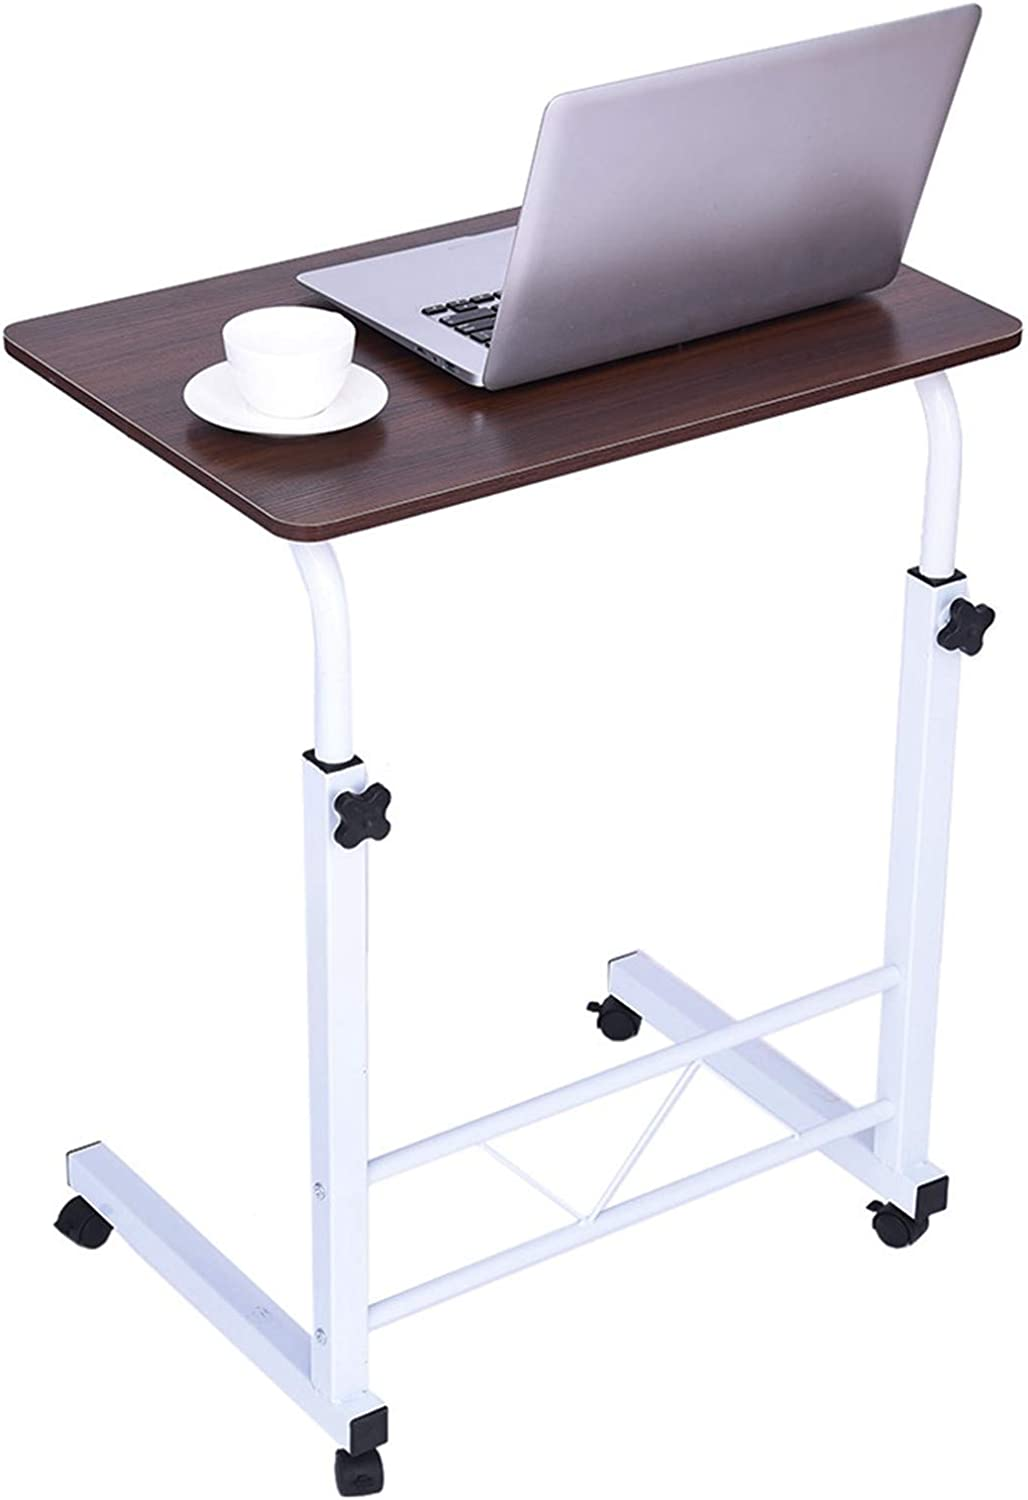 【USA in Stock 】 Computer Desk Bedside Table Couch Bed TV Dinner Tray Tables Adjustable Home Office Chair Can Be Lifted and Lowered Mobile White